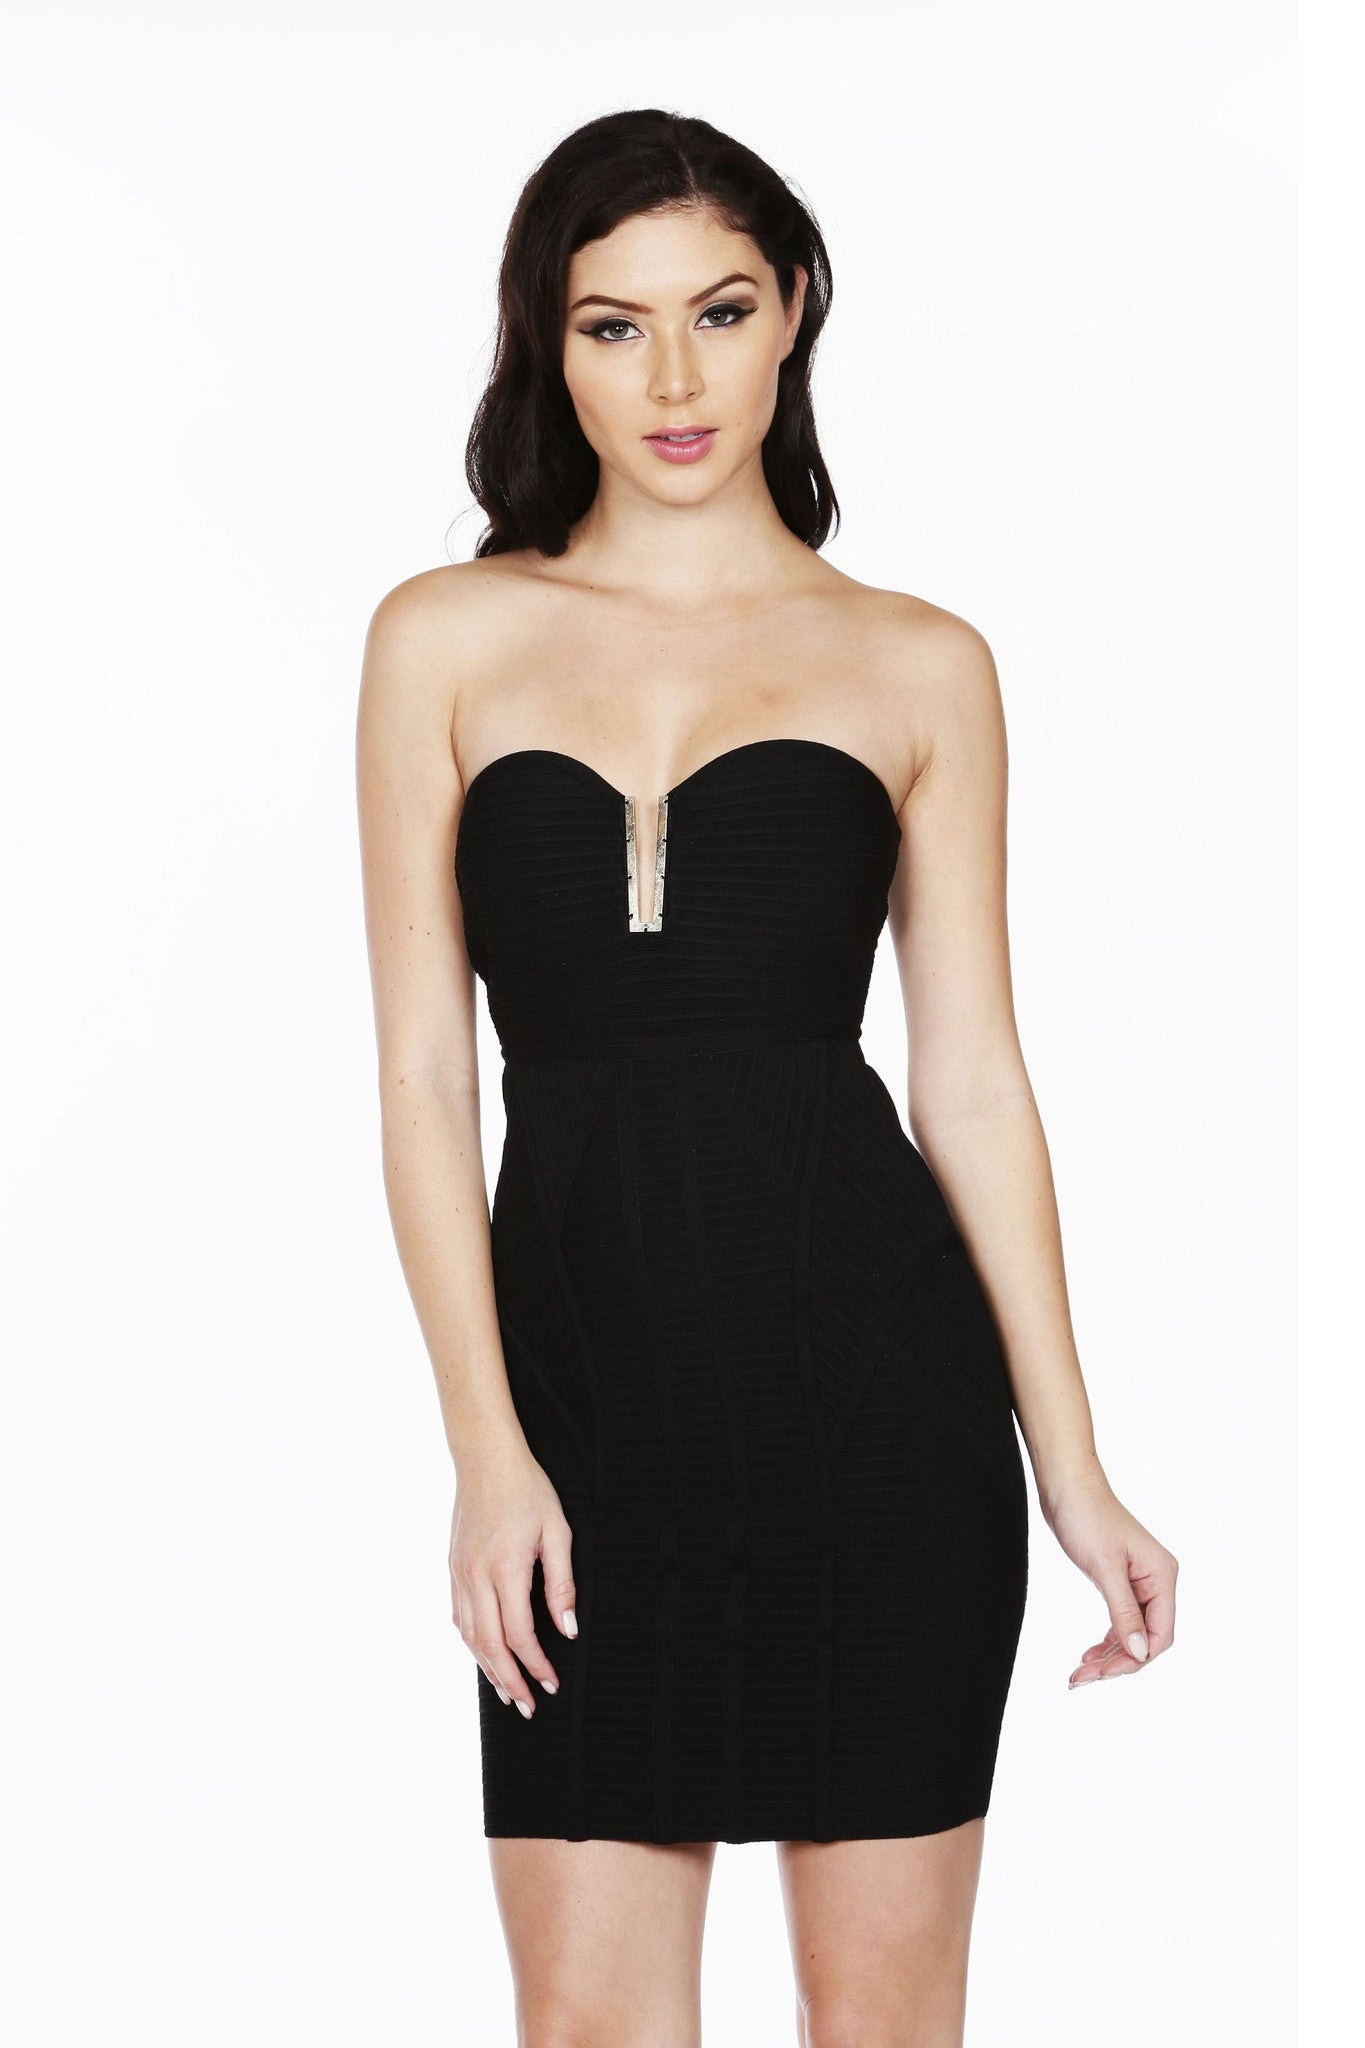 Naughty Grl Playful & Strapless Bandage Dress - Black - NaughtyGrl